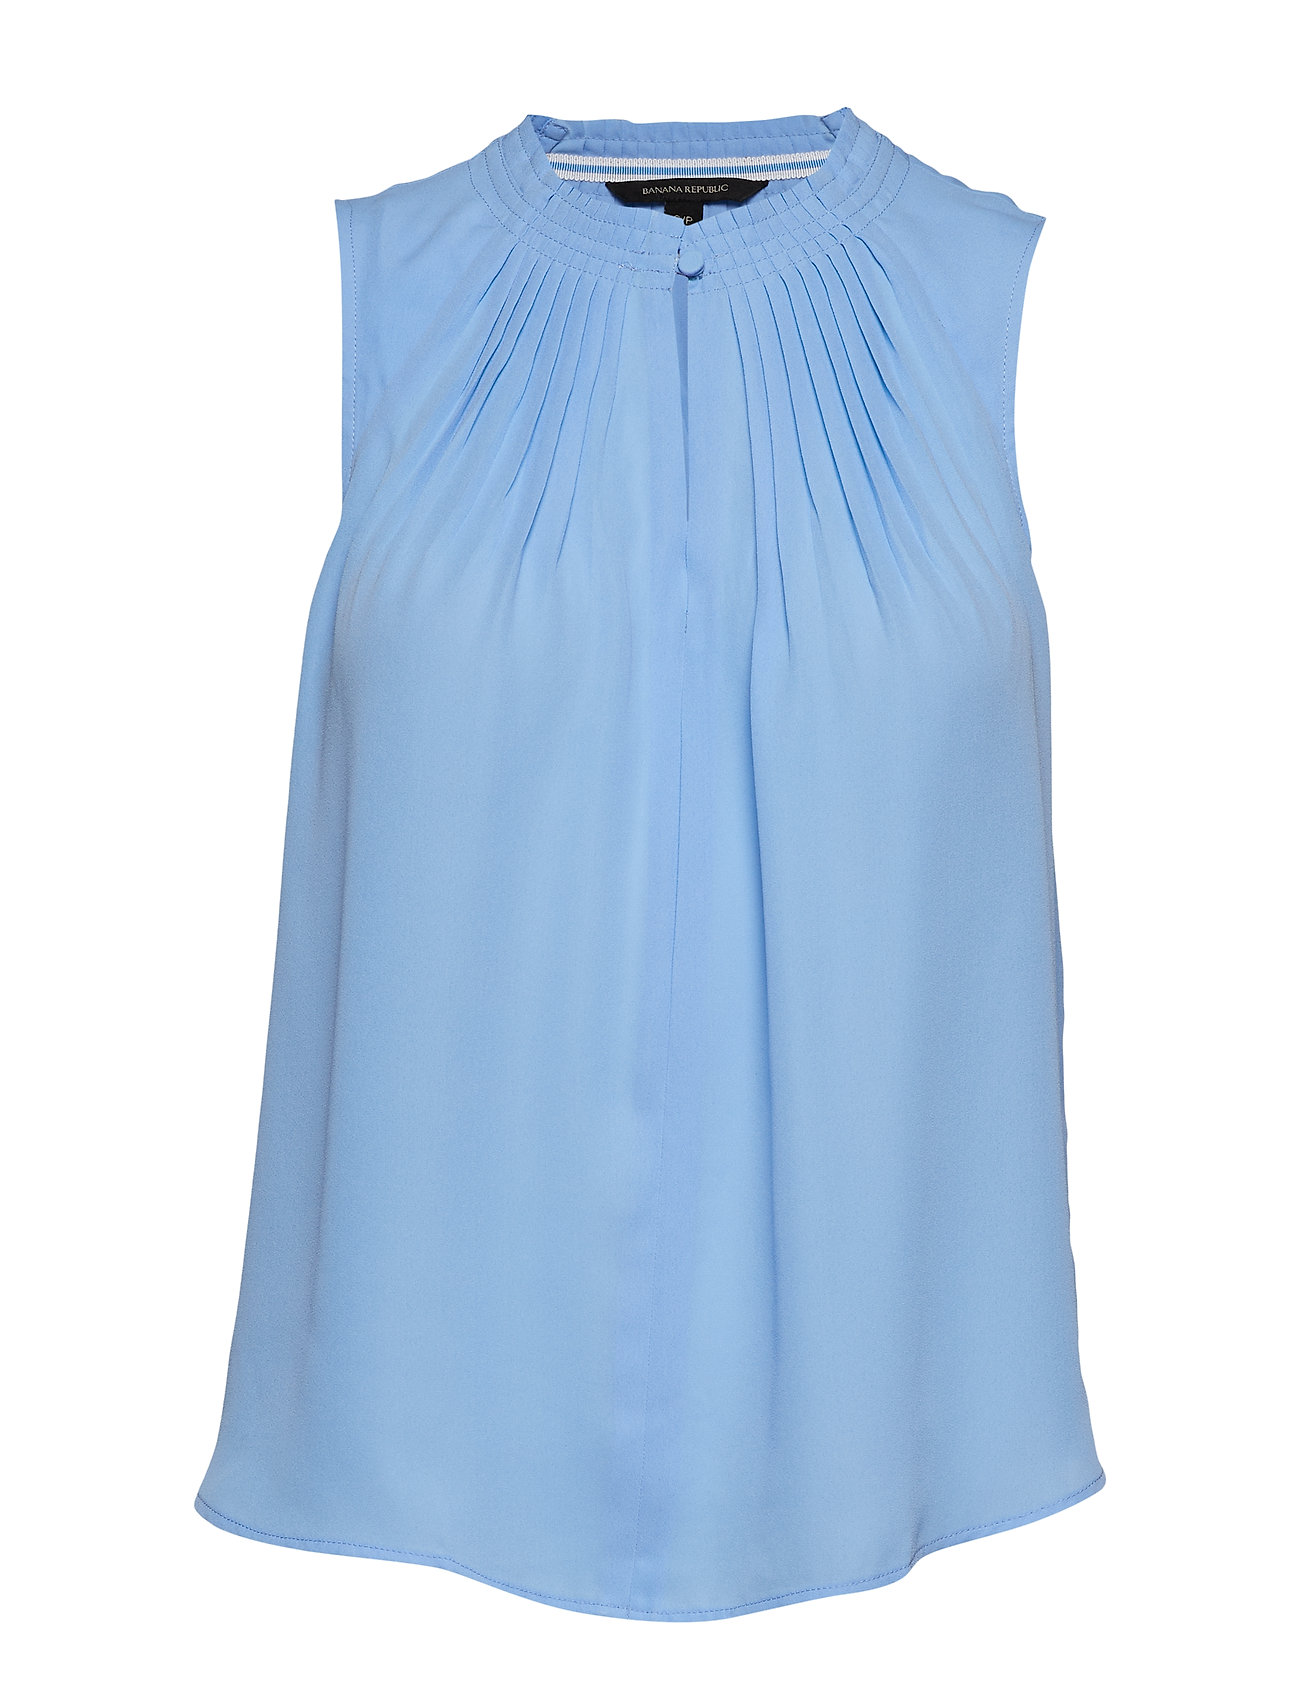 Image of Pleated Sleeveless Top Bluse Ærmeløs Blå Banana Republic (3189527953)